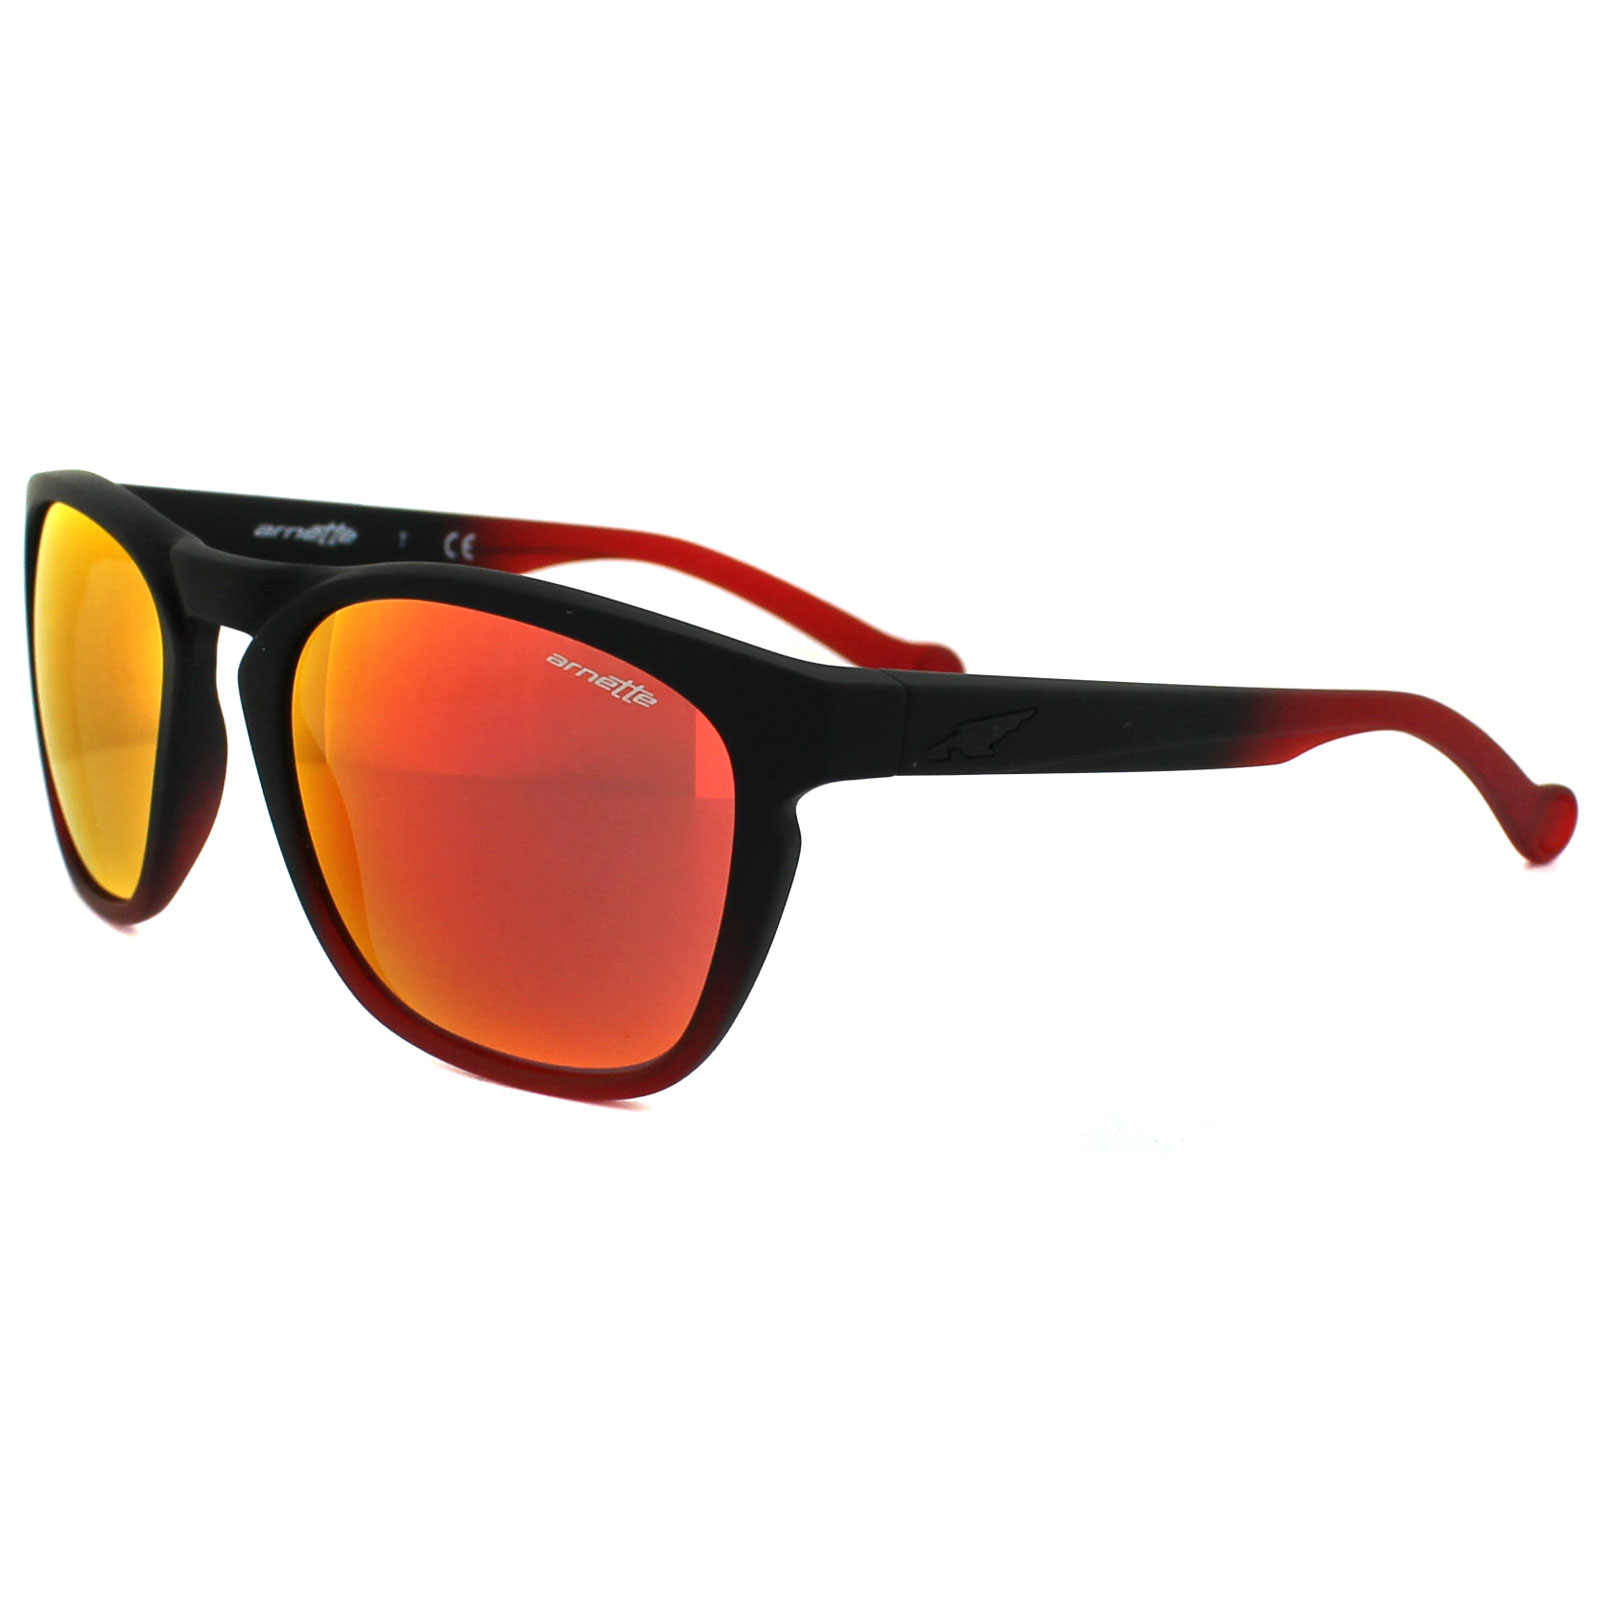 247a5654ee025 Arnette Sunglasses 4203 Groove 22566Q Fuzzy Black   Cherry Red ...